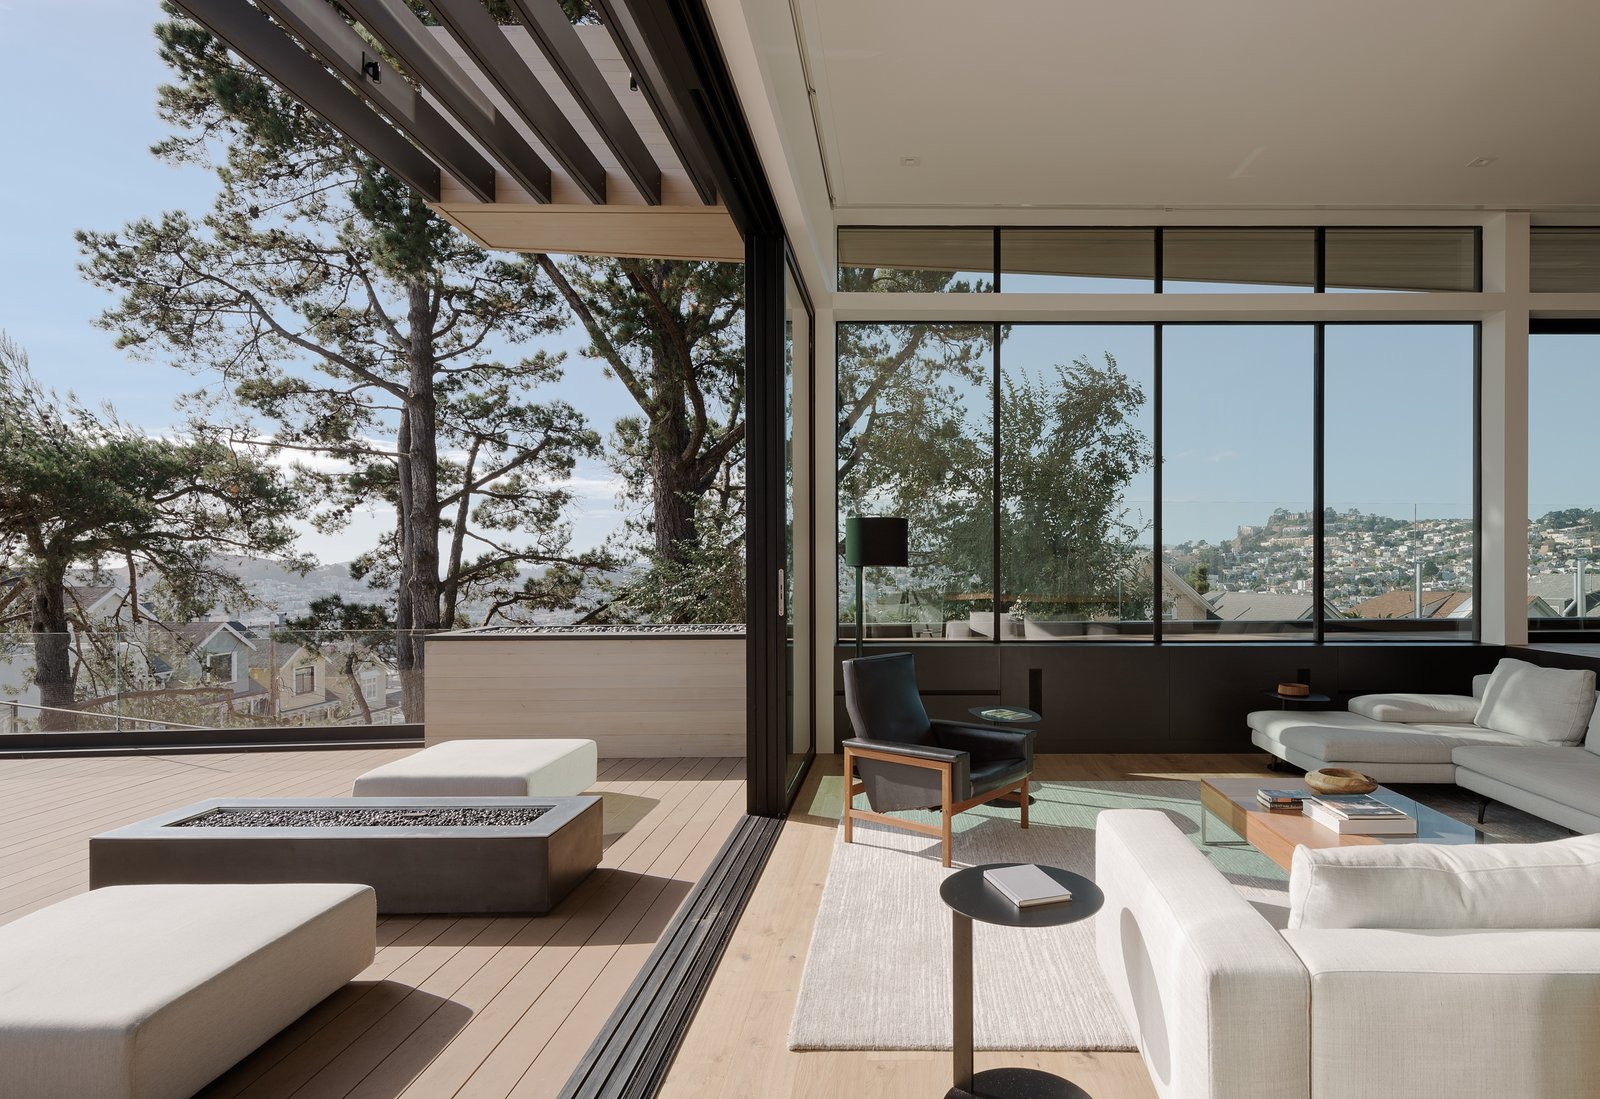 Living Room, Sectional, Sofa, Coffee Tables, Recessed Lighting, End Tables, Bench, Chair, and Light Hardwood Floor Blurred Line Between Living Room and Exterior  Dolores Heights Residence I by John Maniscalco Architecture